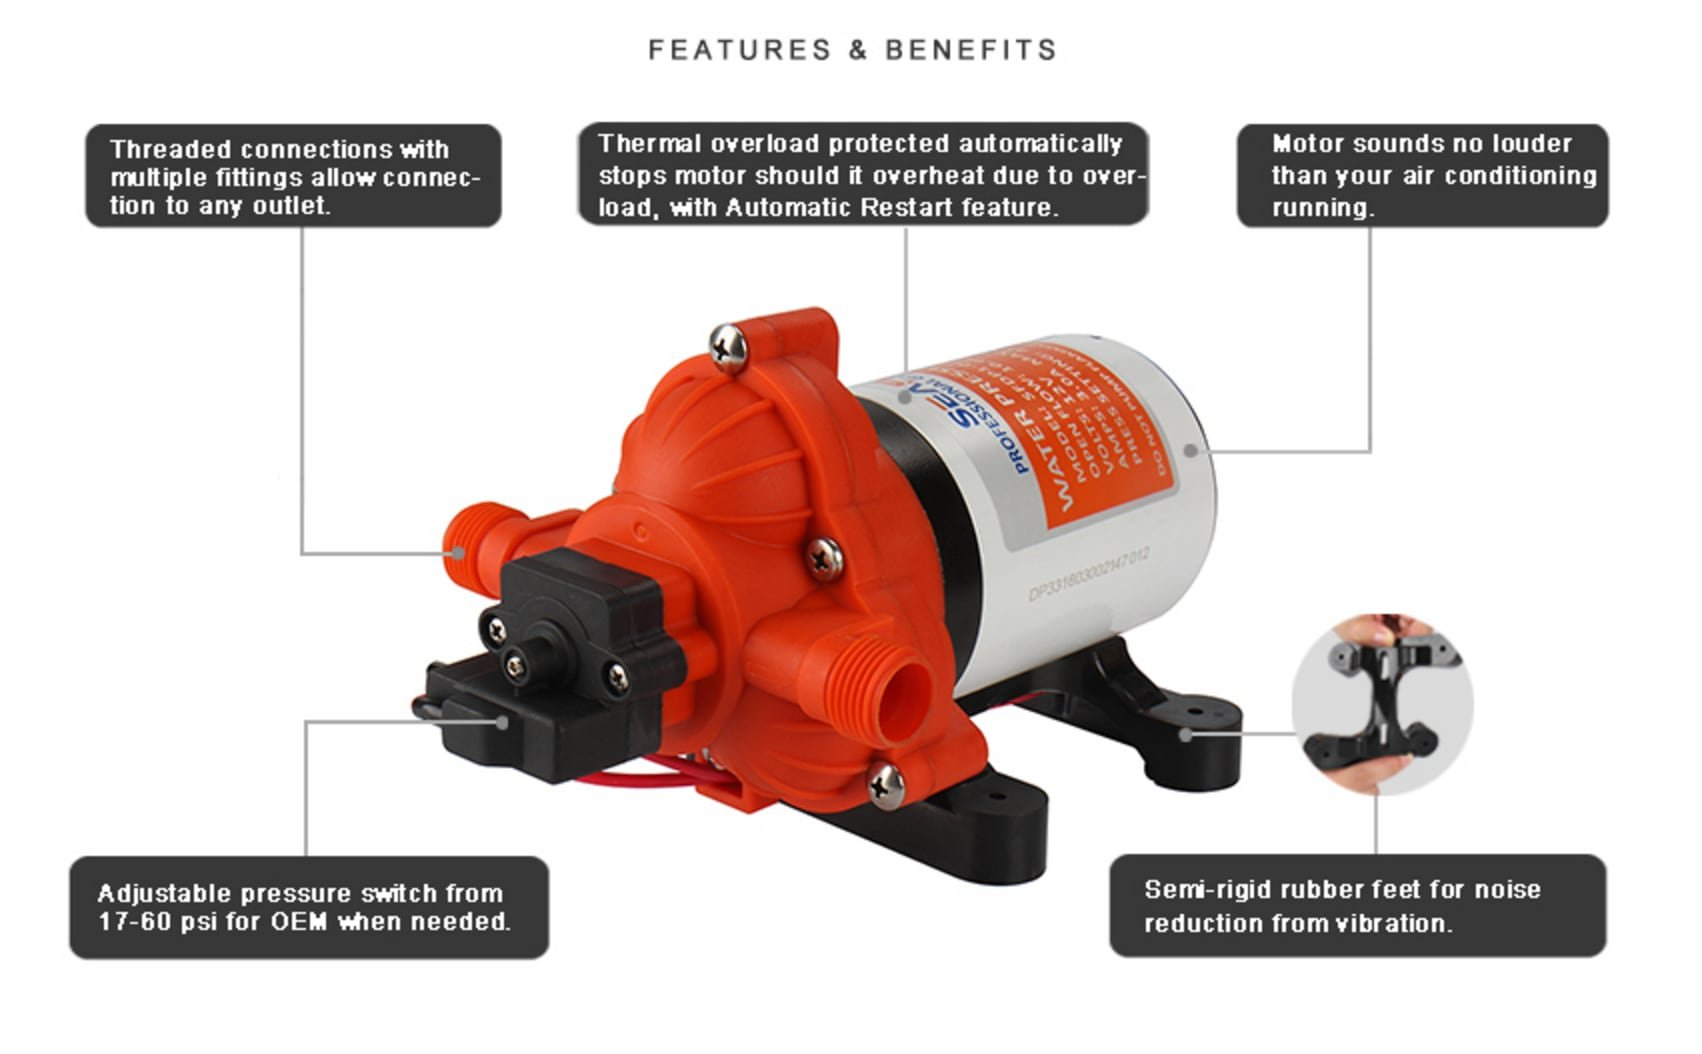 SEAFLO 33-Series Industrial Water Pressure Pump w/Power Plug for Wall Outlet - 115VAC, 3.3 GPM, 45 PSI by Seaflo (Image #5)